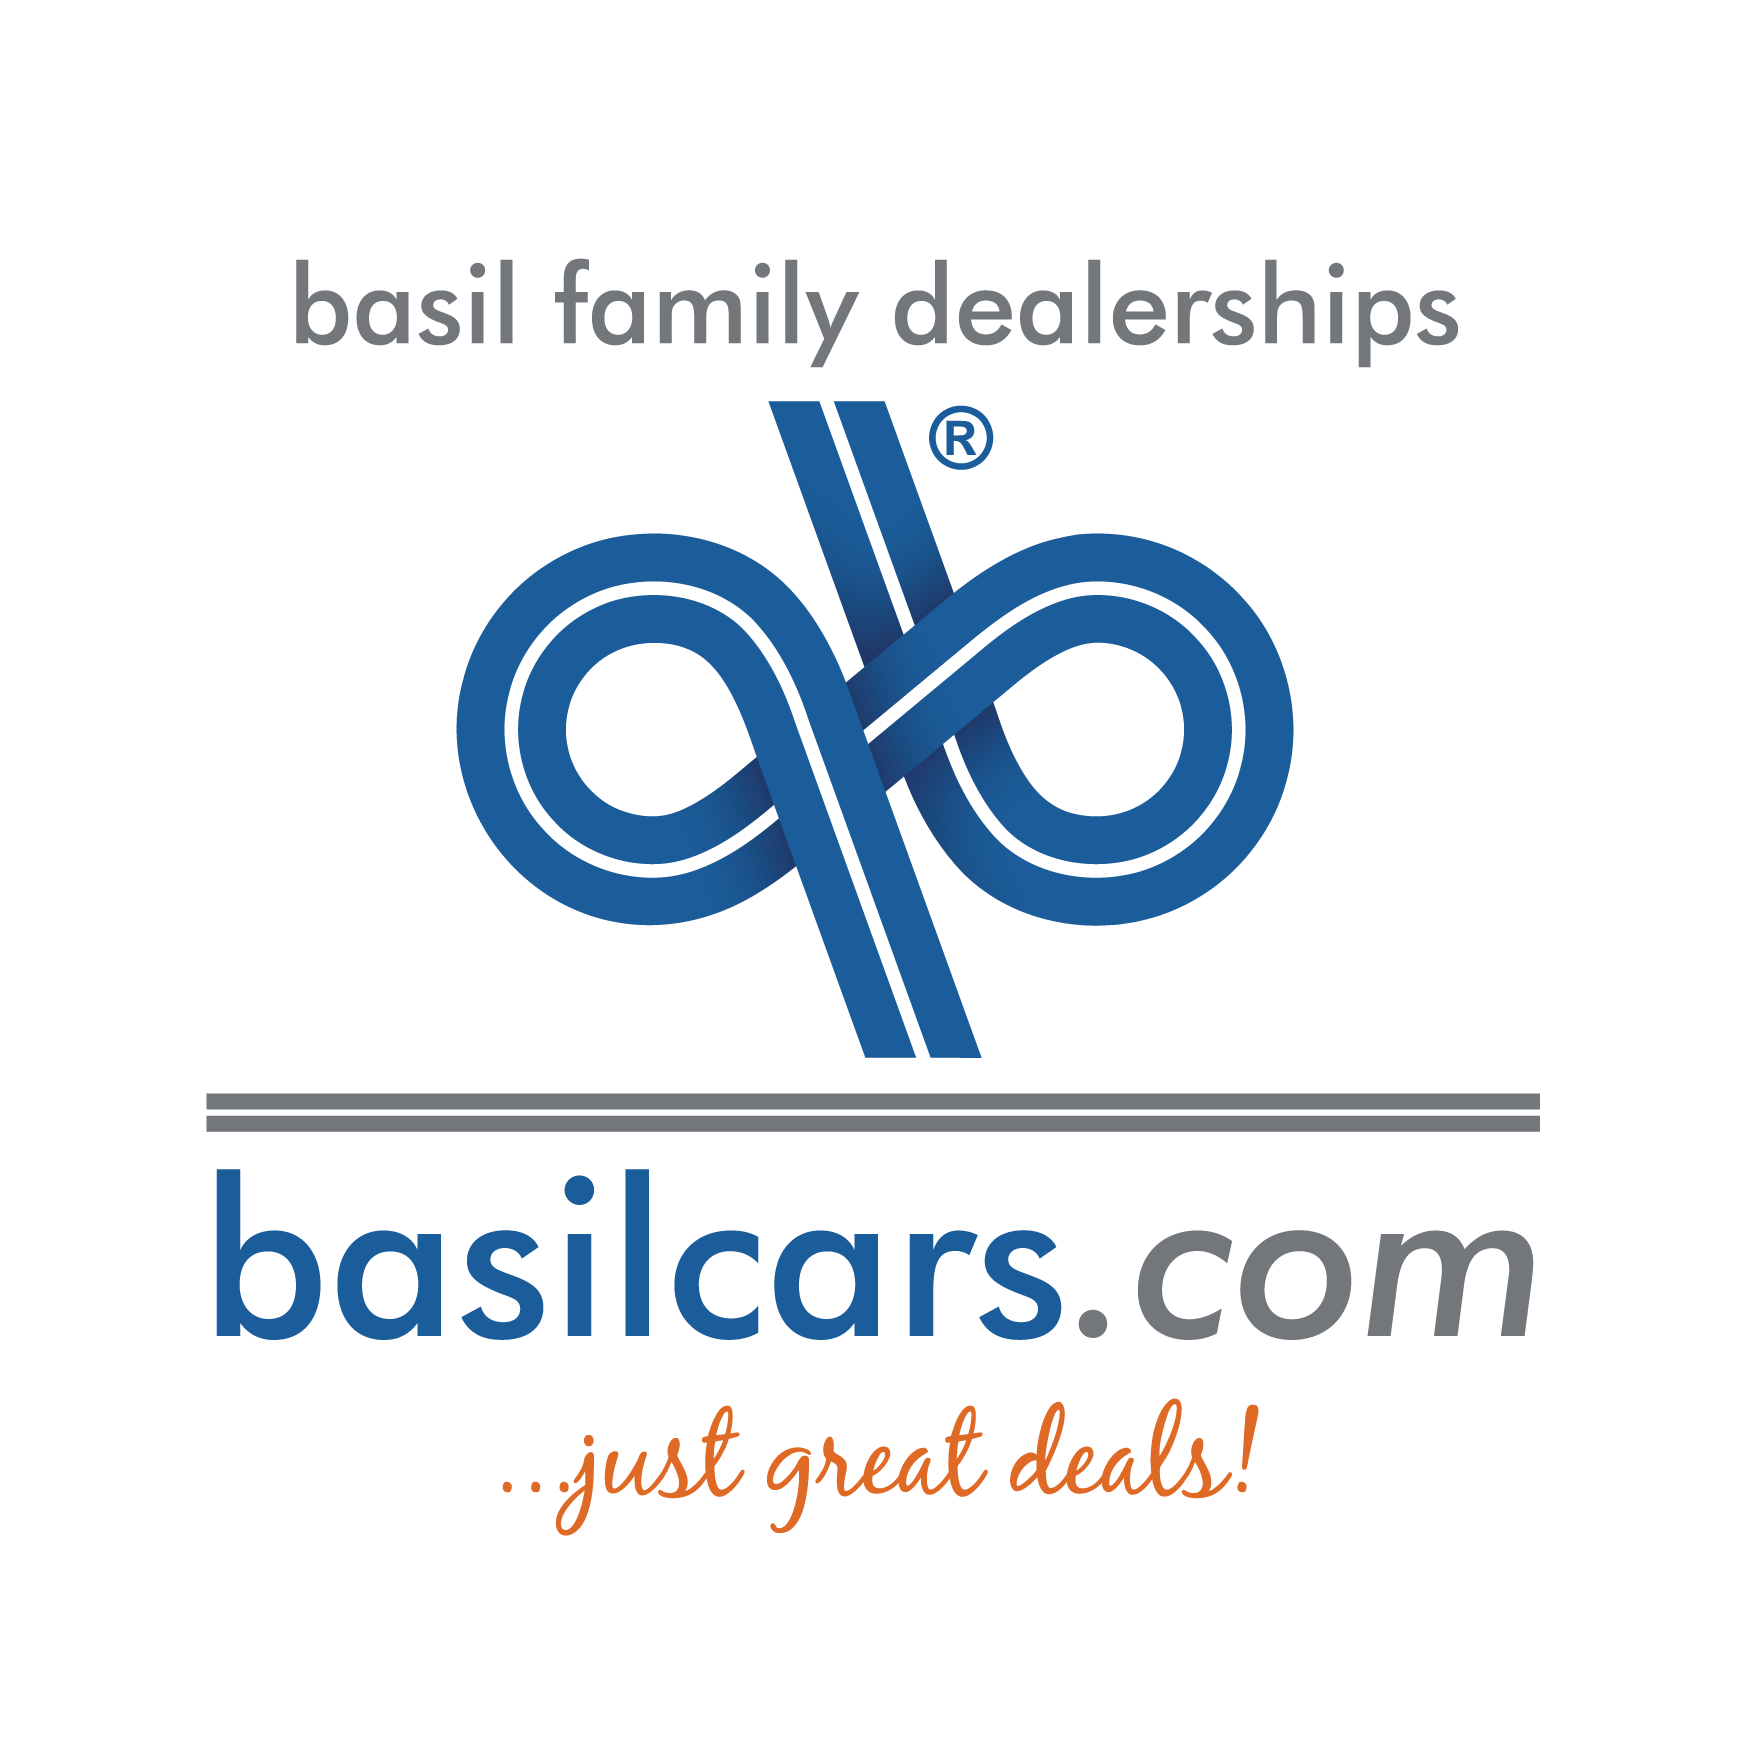 Joe Basil Chevy >> Basil Design Assets | Basil Family Dealerships